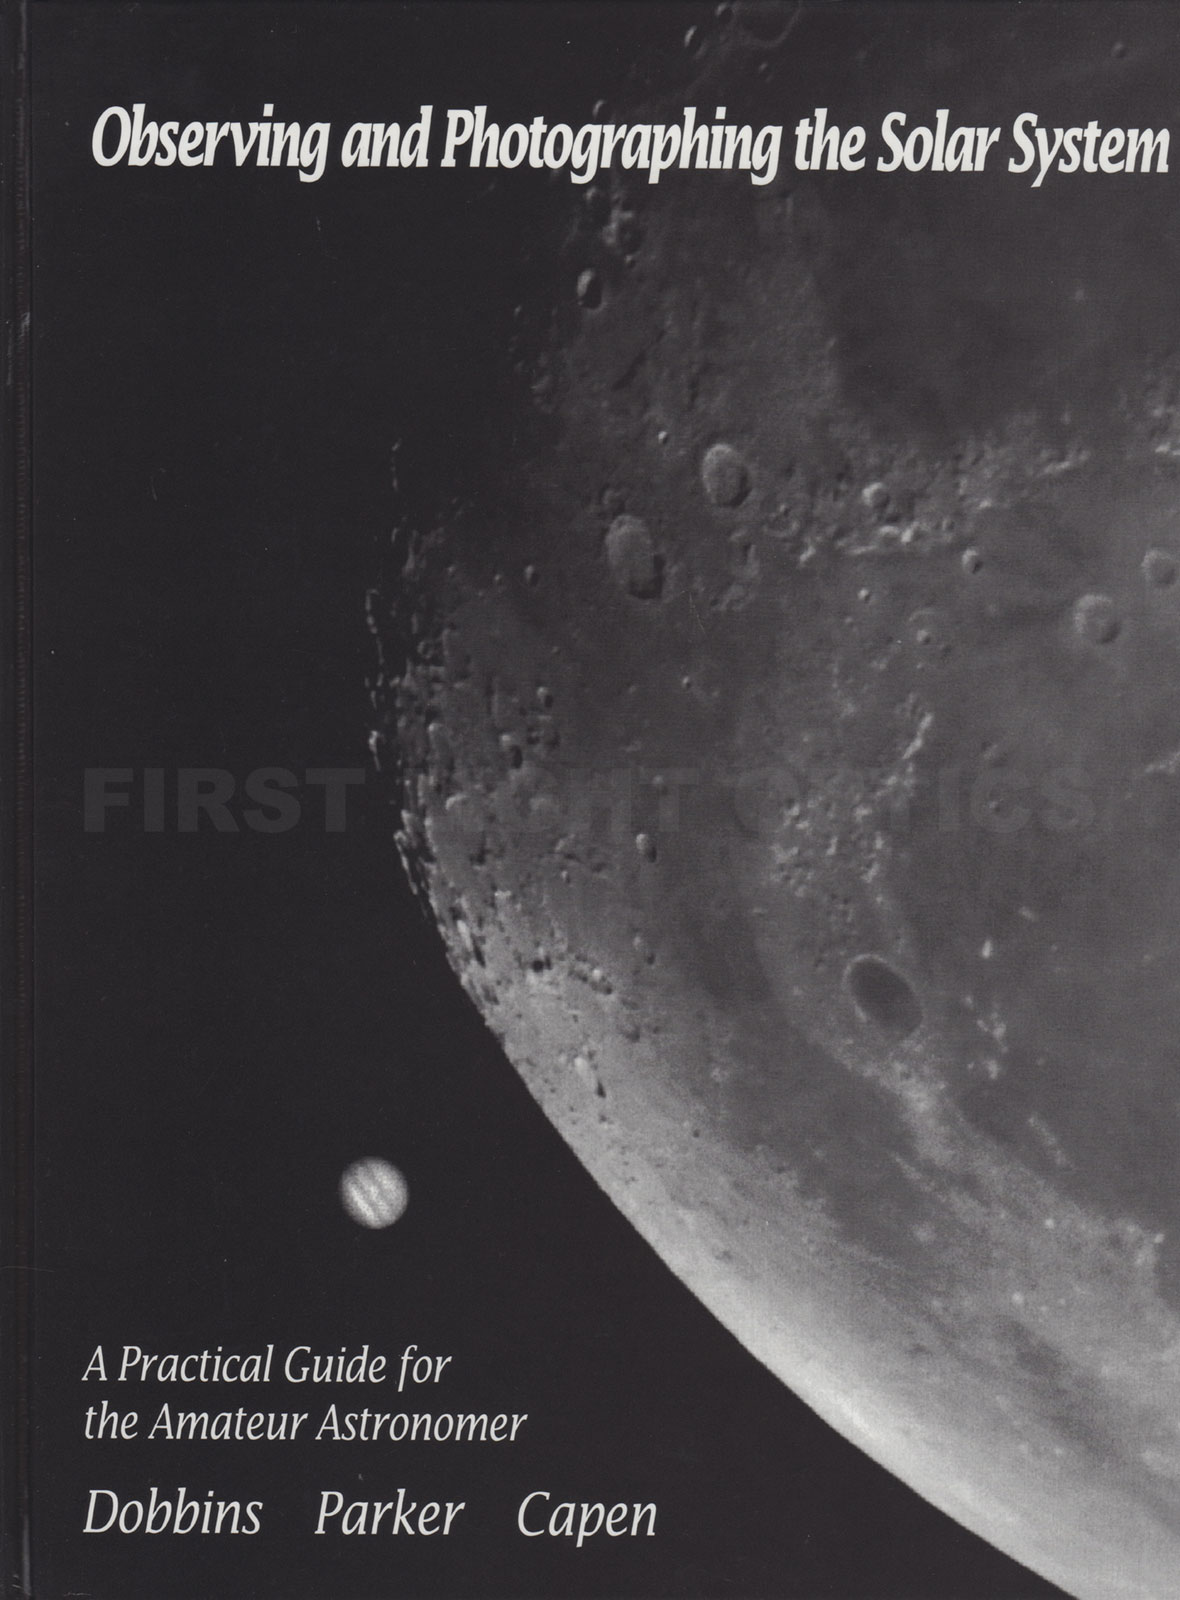 Introduction to Observing and Photographing the Solar System Book